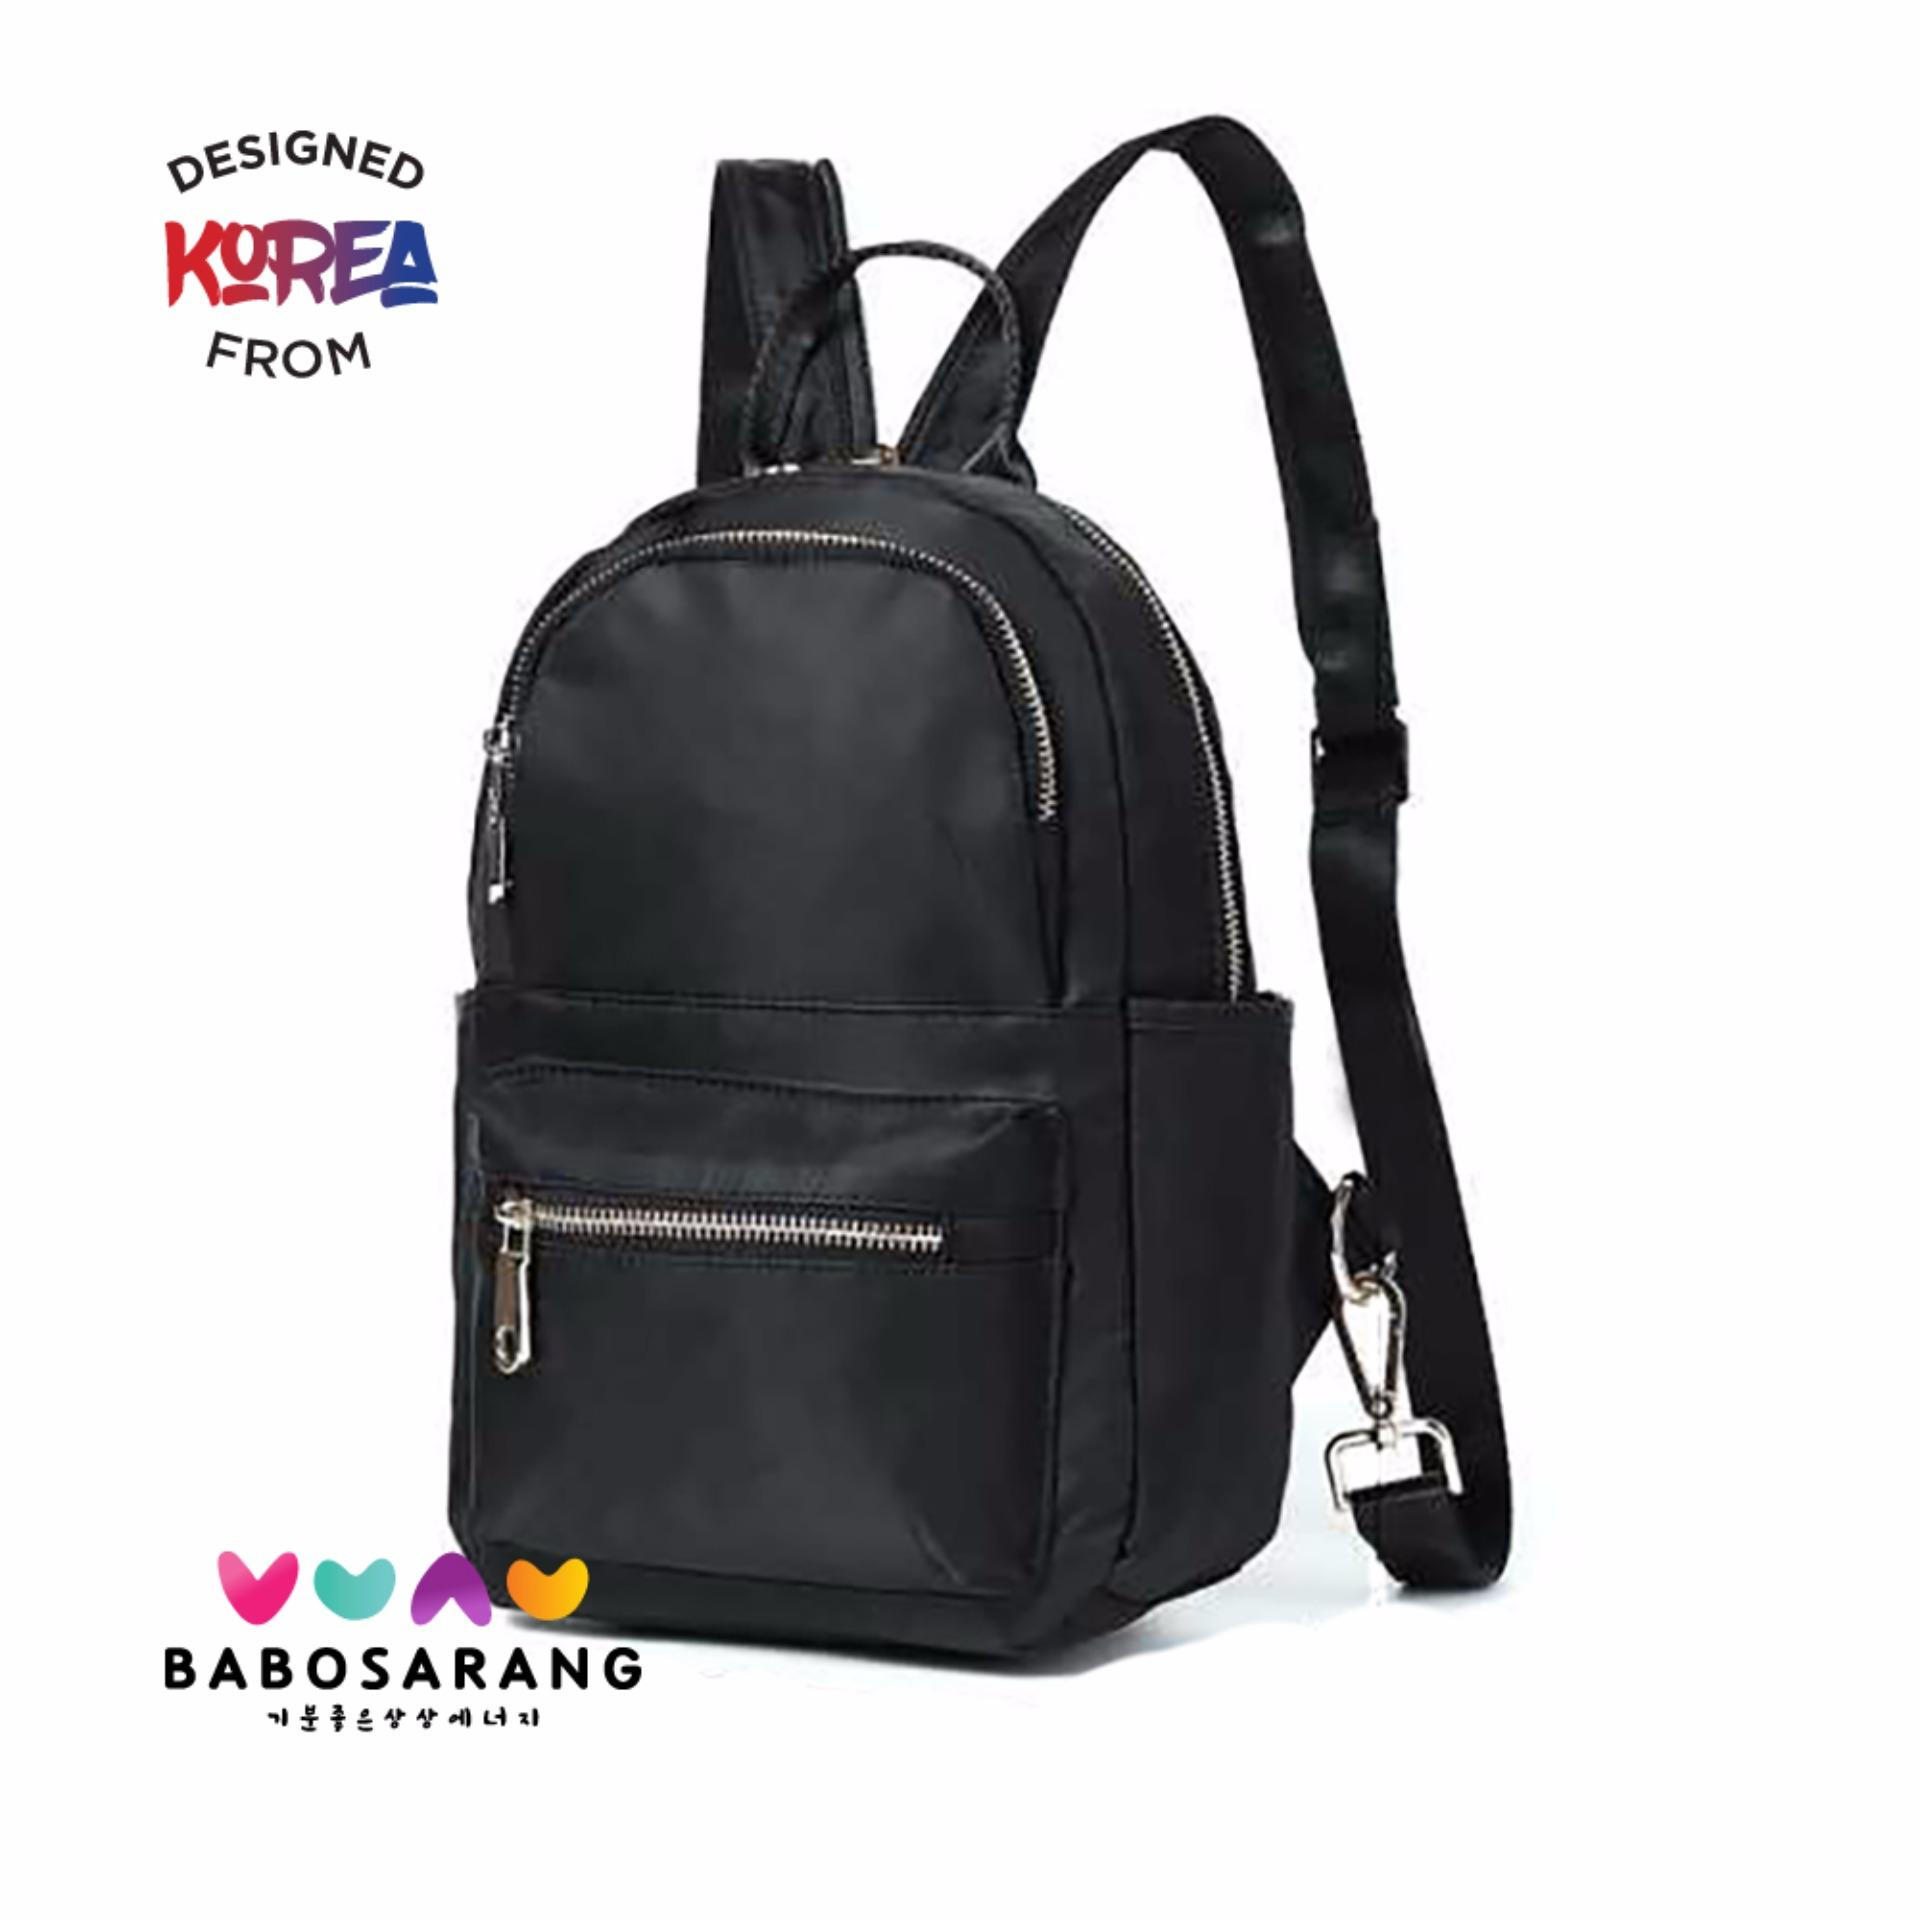 Korean Fashion Style Babosarang Tas Ransel Batam Wanita Backpack Korea Model Fashion Gothic Style Bs2 Promo Beli 1 Gratis 1